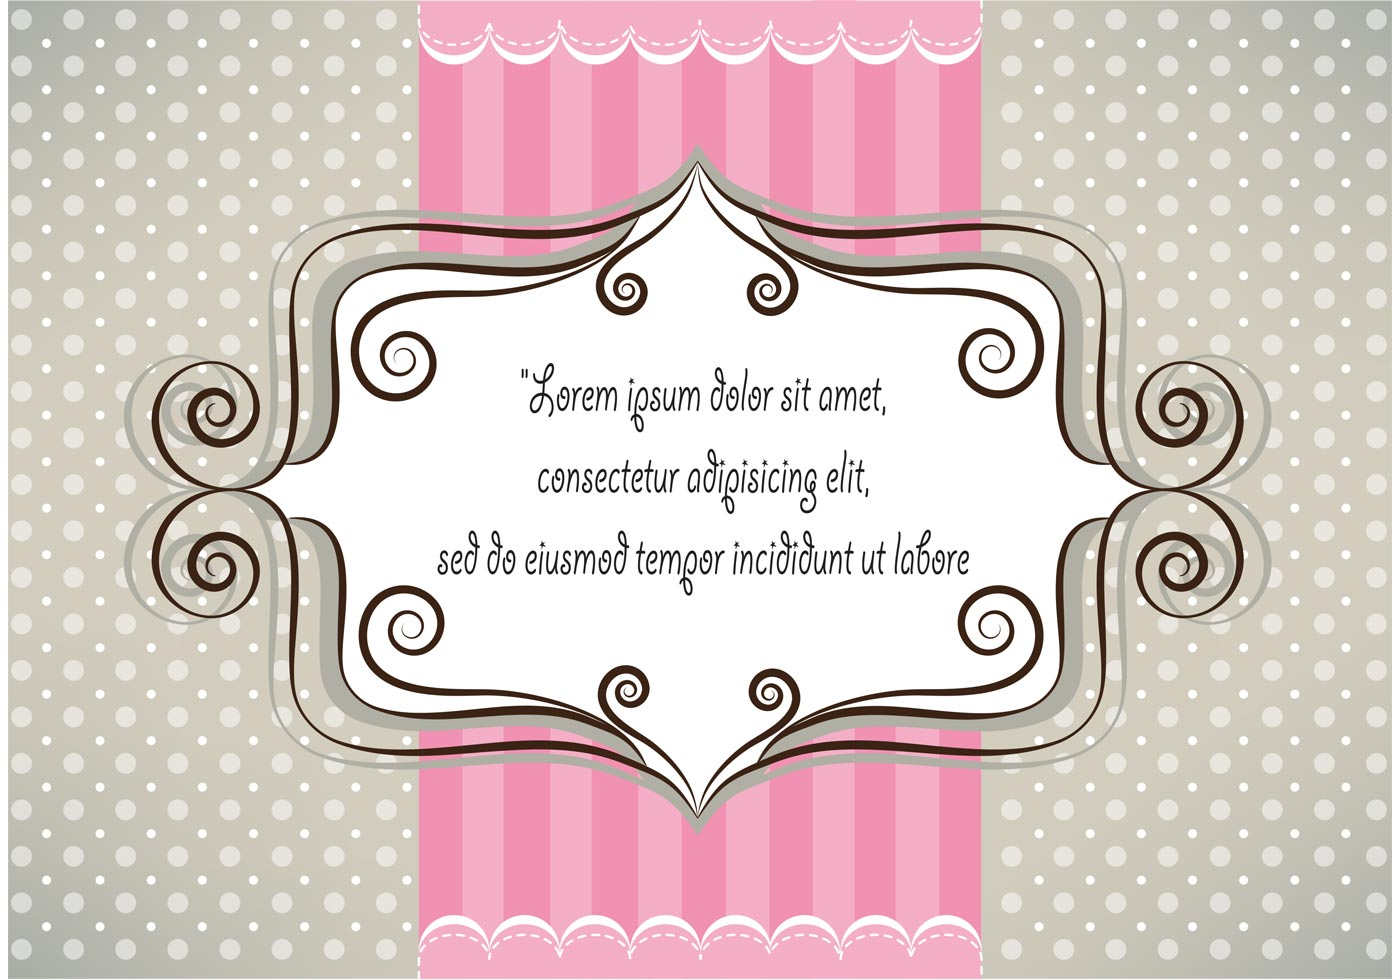 Cute Couple Kissing Wallpaper Download Lovely Pink And Gray Card Design Download Free Vector